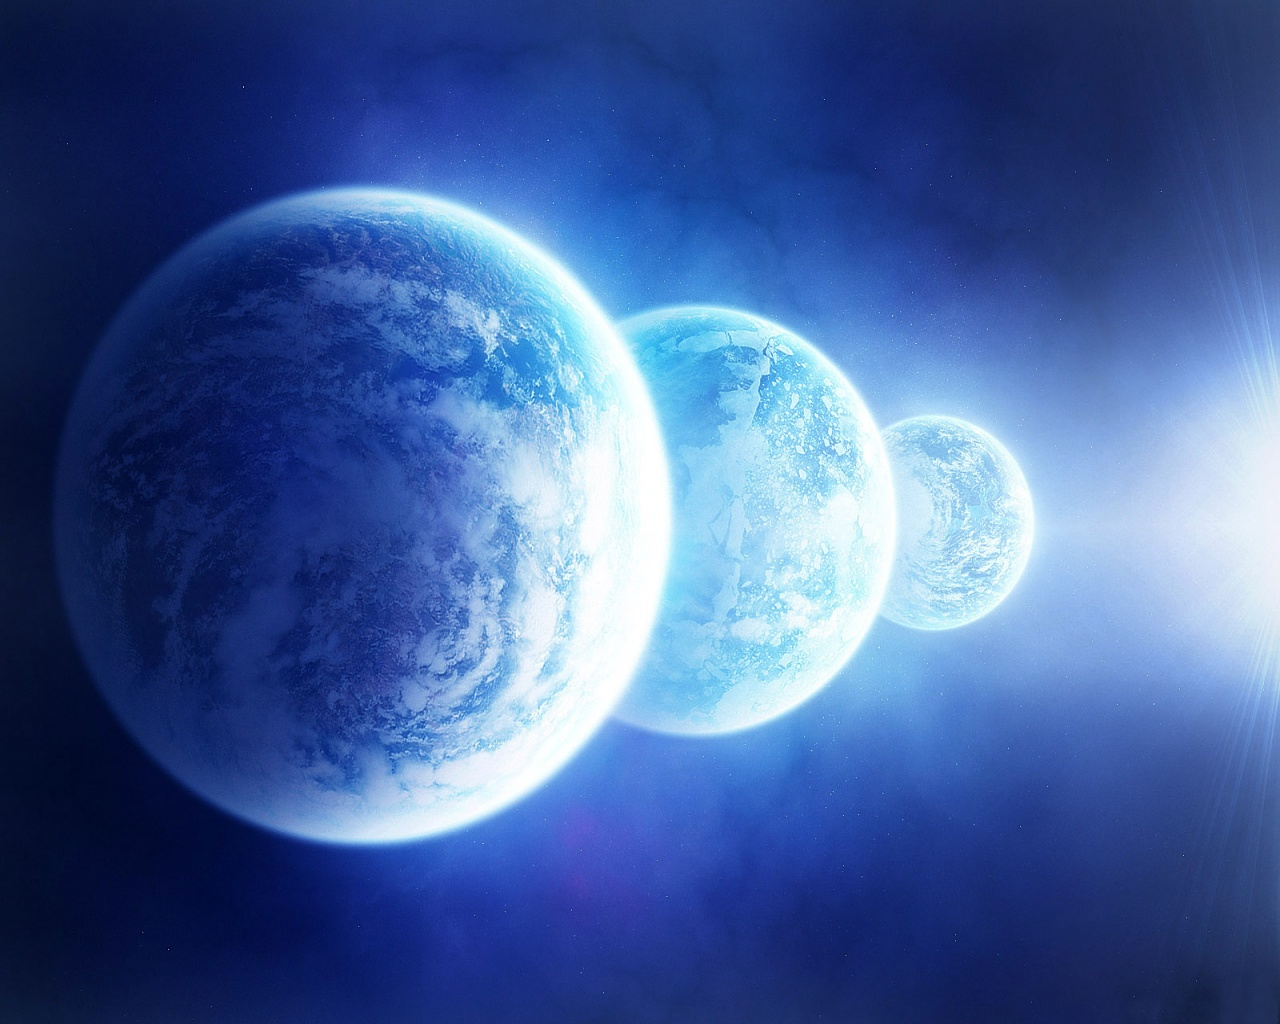 row planets in space - photo #5